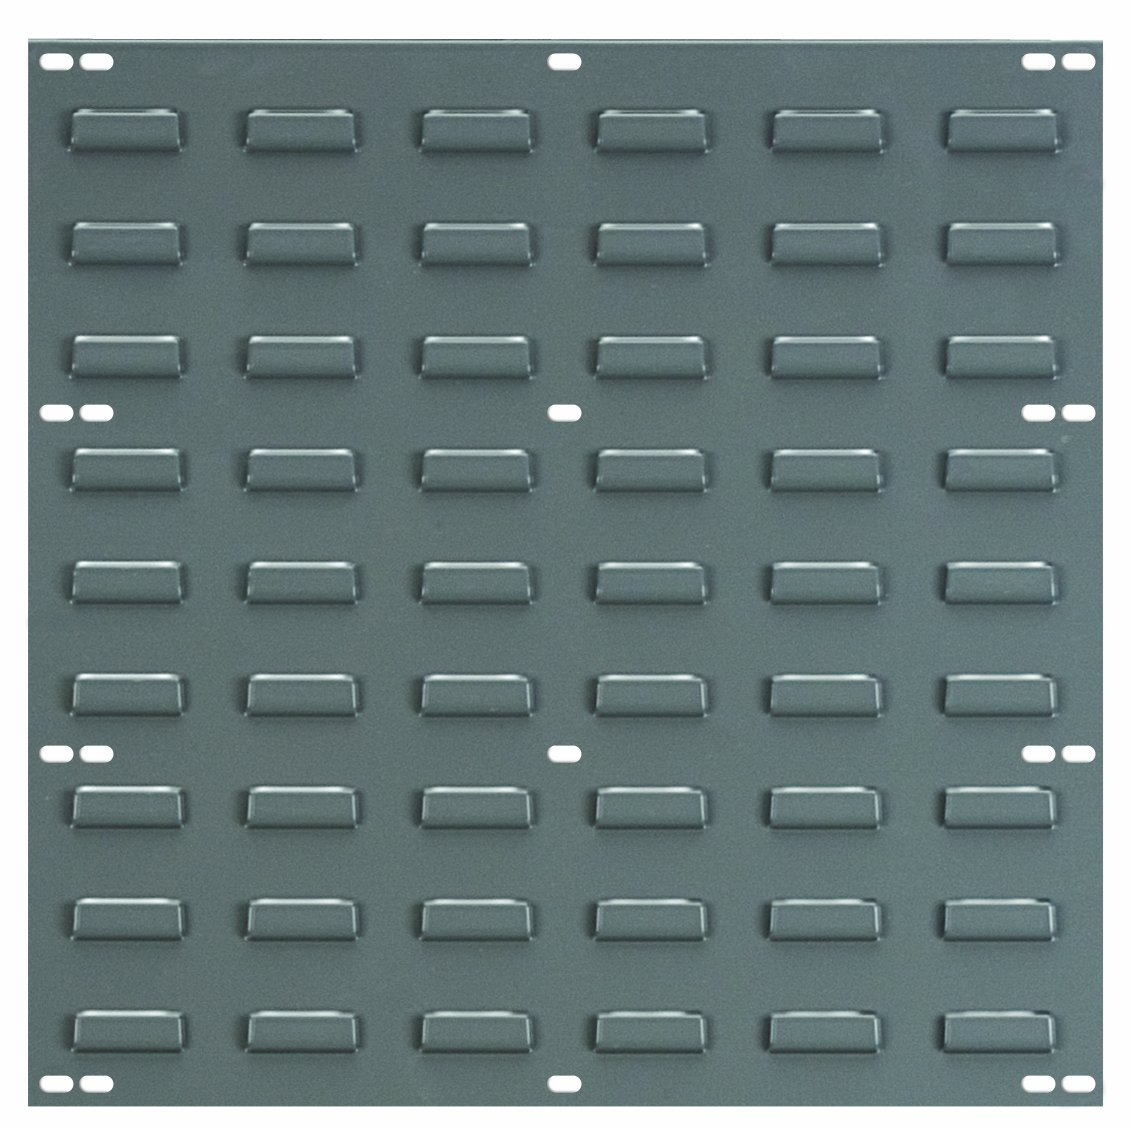 Akro-Mils 30618 Louvered Steel Panel for mounting AkroBins, 18-Inch Wide by 19-Inch High, Grey, Pack of 4 by Akro-Mils